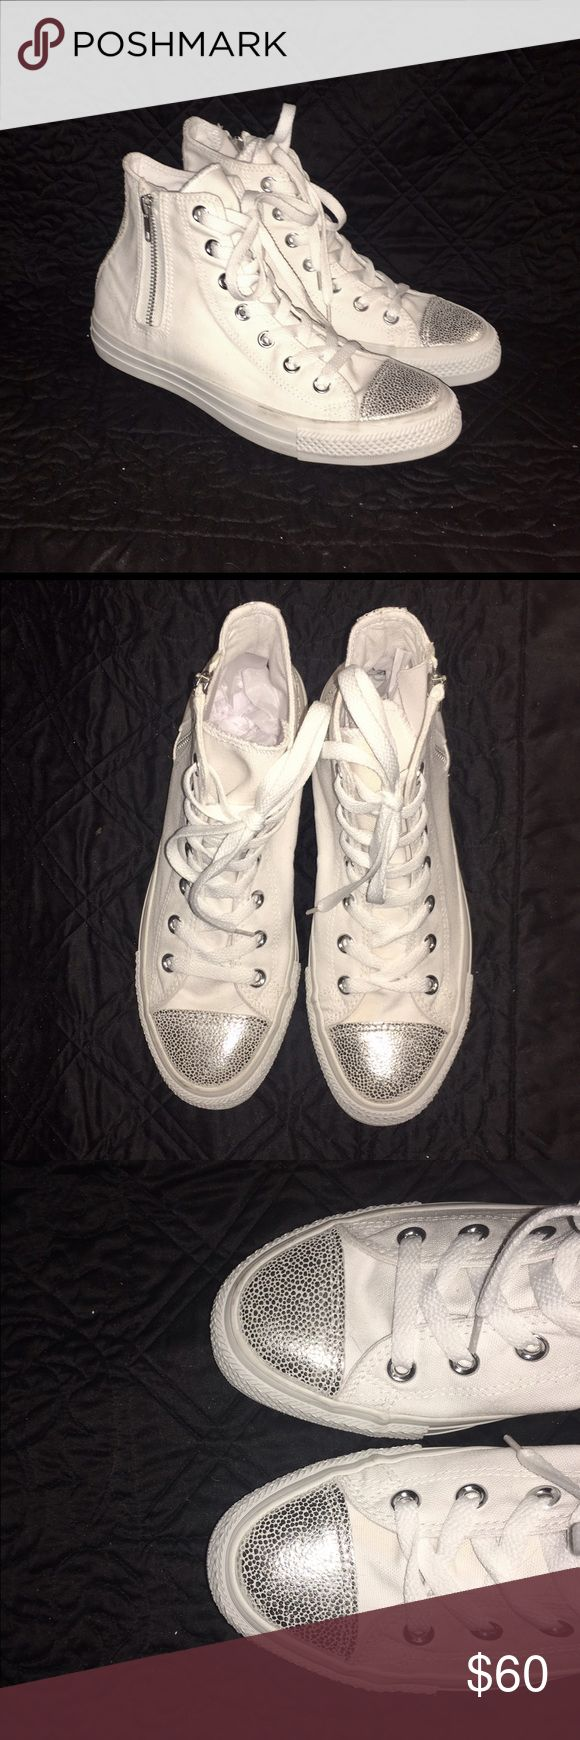 Converse Zip-Up High Tops w/ Silver Accents  Brand-new with tags. Converse All Star Sneakers w/ zippers on sides. Never worn & in perfect condition. Faux pebbled leather accents in front & back of sneaker.  Shoes Sneakers